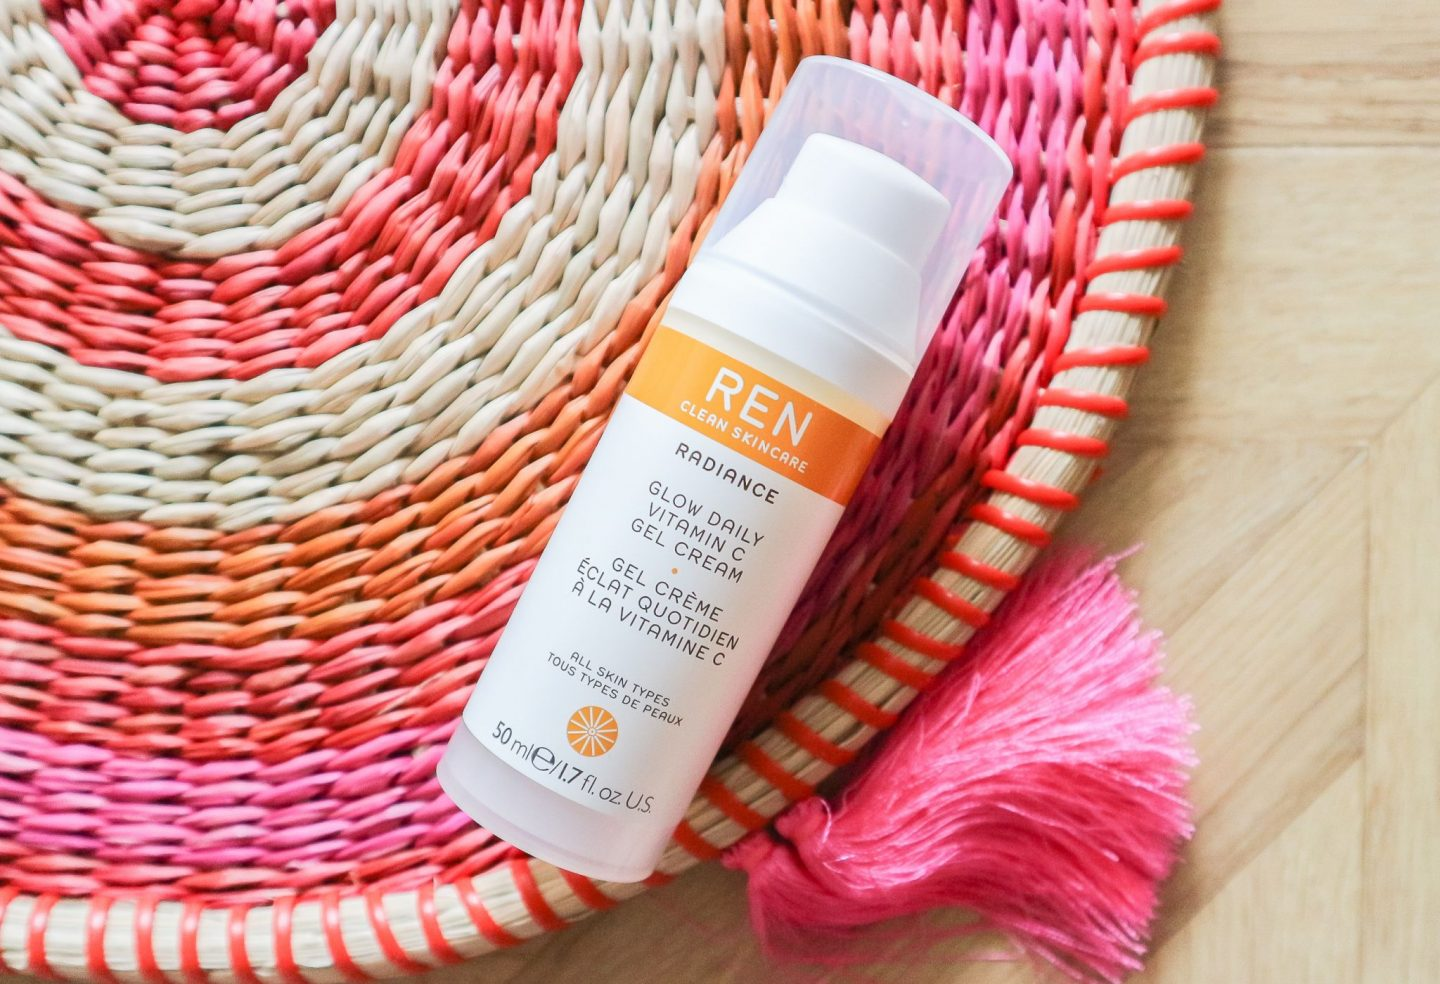 REN Radiance Glow Daily Vitamin C Gel Cream